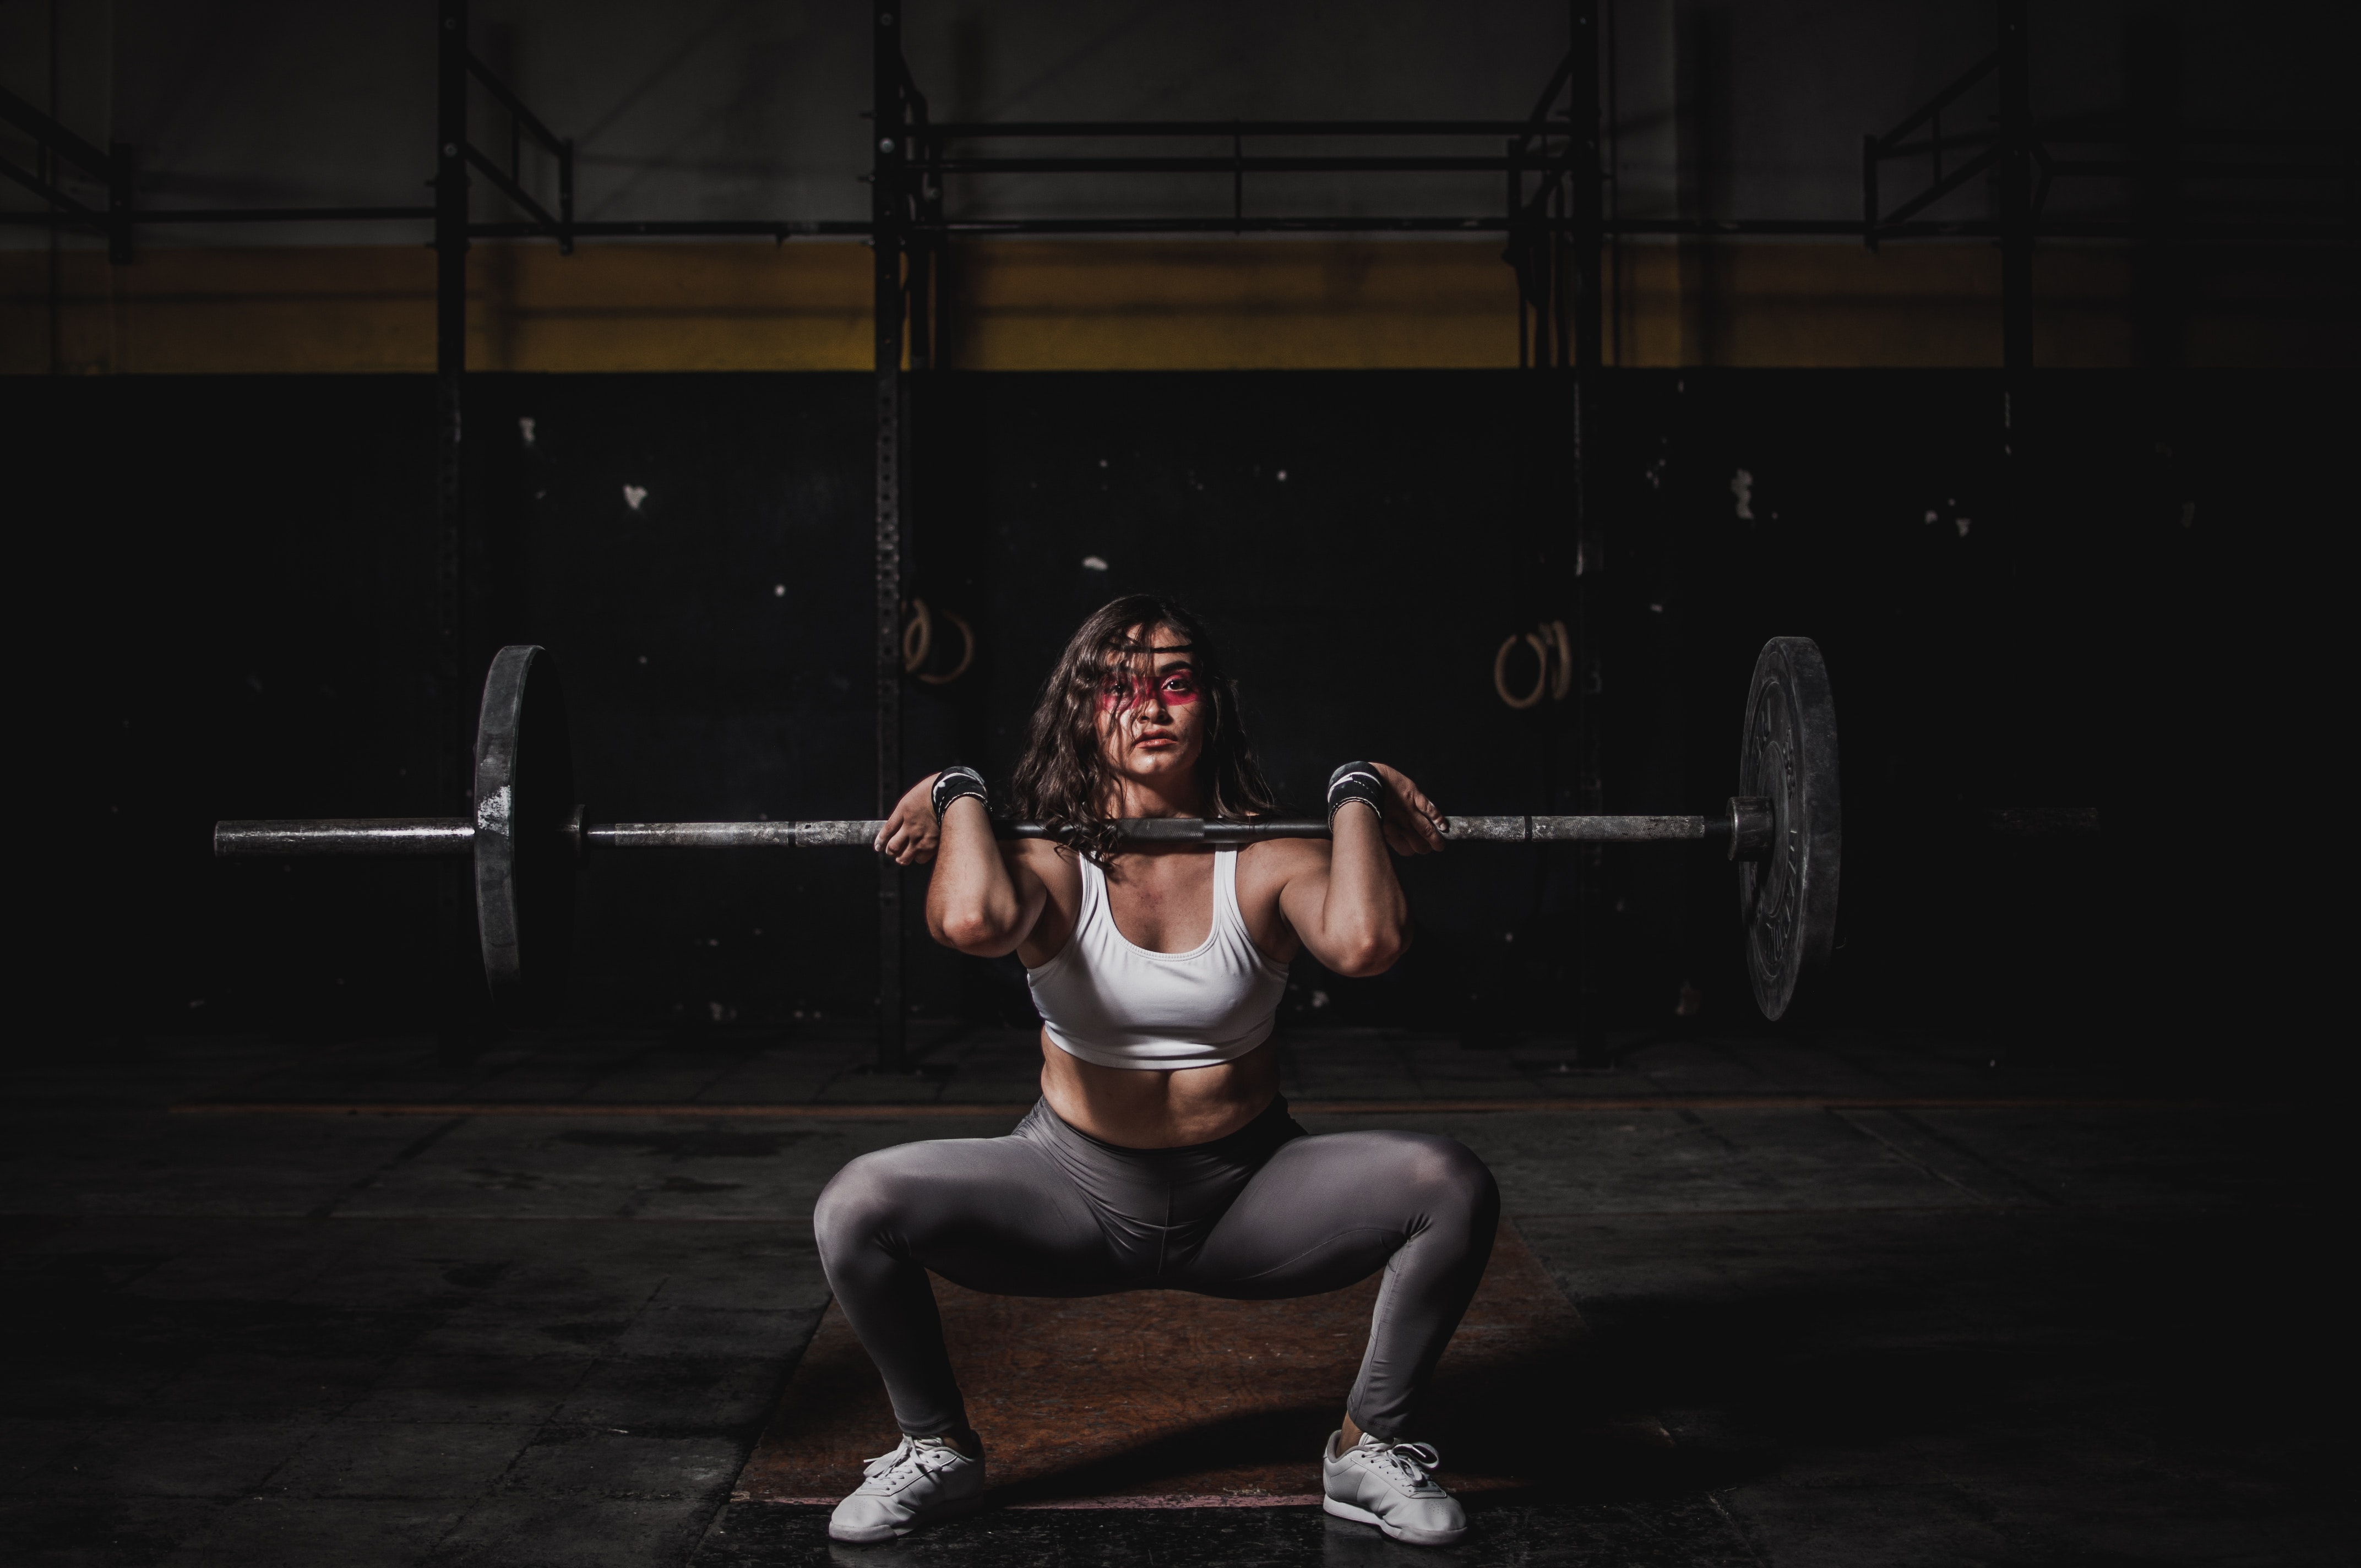 woman athlete weight training / Image source: Leon Martinez/pexels.com